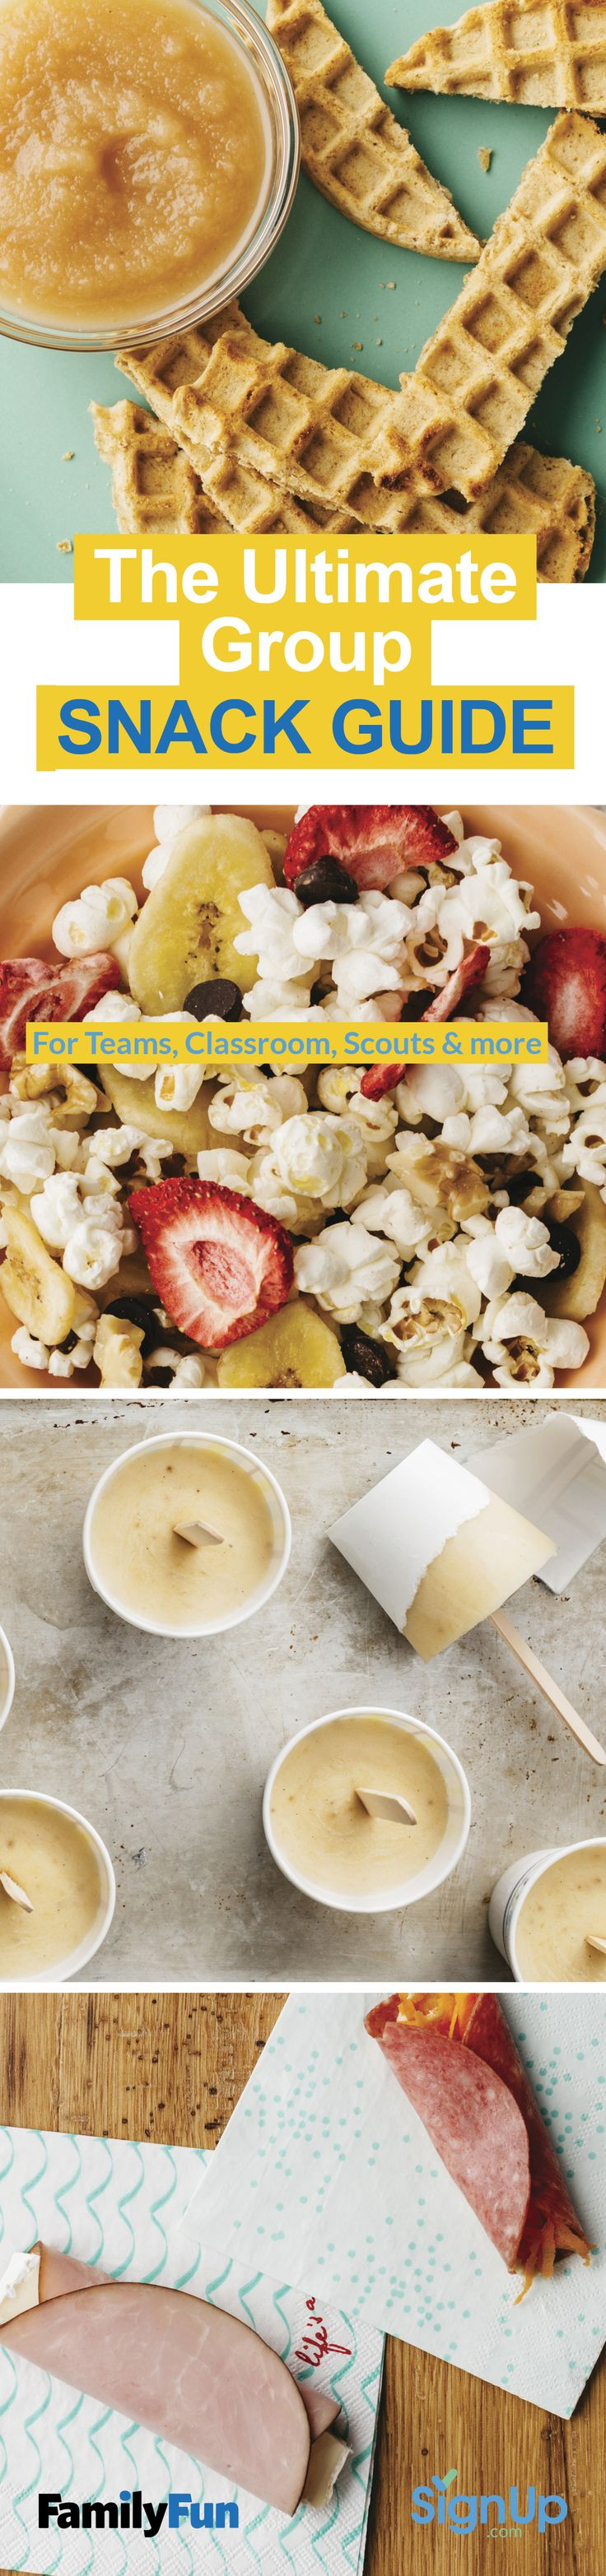 Free EBook: Snack Guide For Teams, Classrooms, Scouts U0026 More From FamilyFun  Magazine